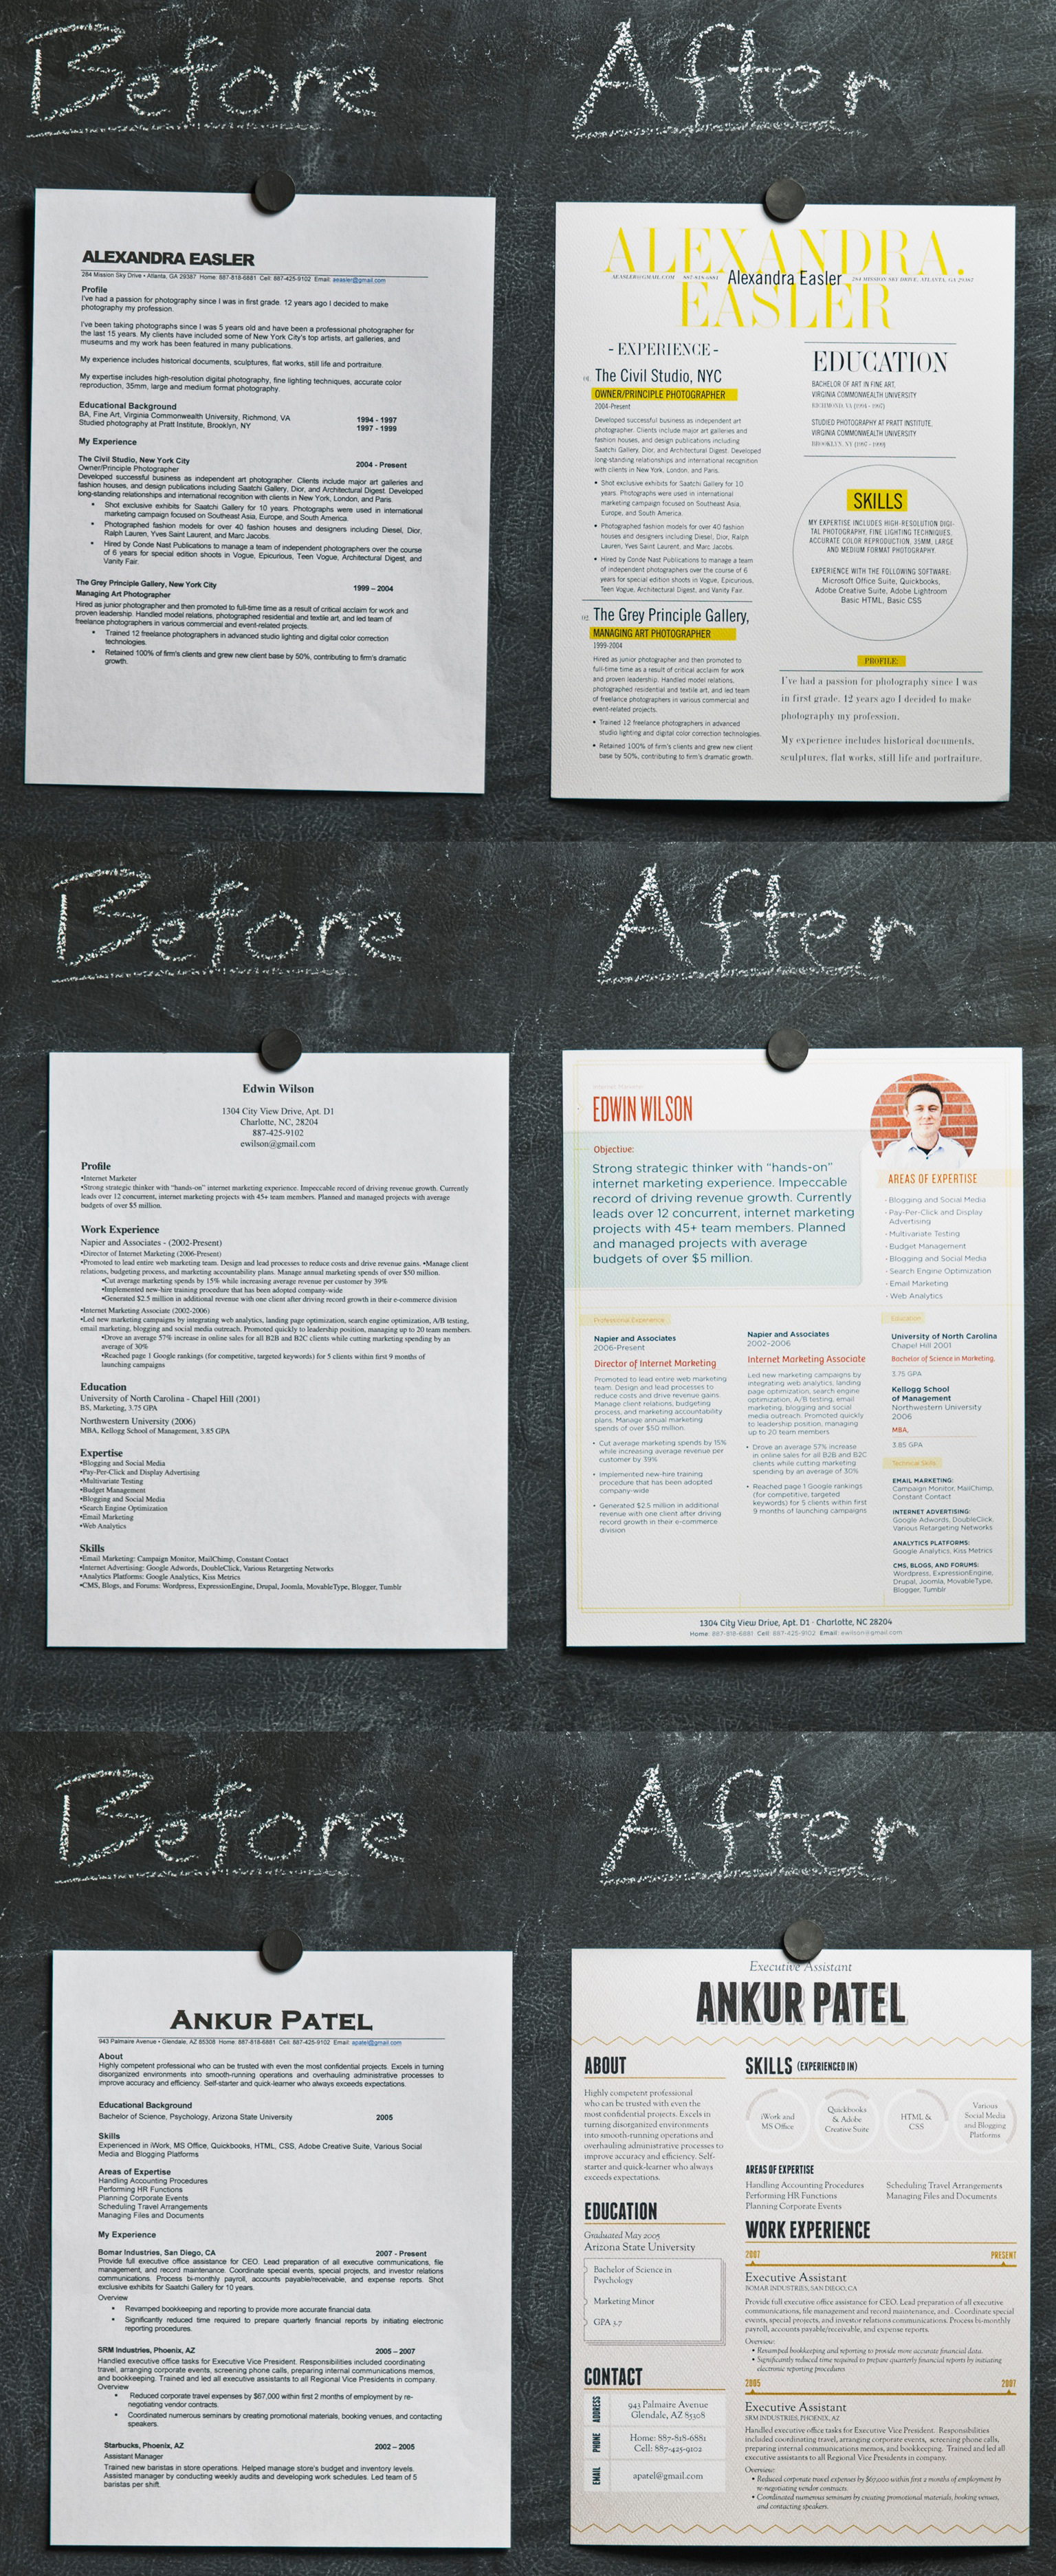 Resume Ways To Make Resume Stand Out can beautiful design make your resume stand out a good makes huge difference here are some tips to resume